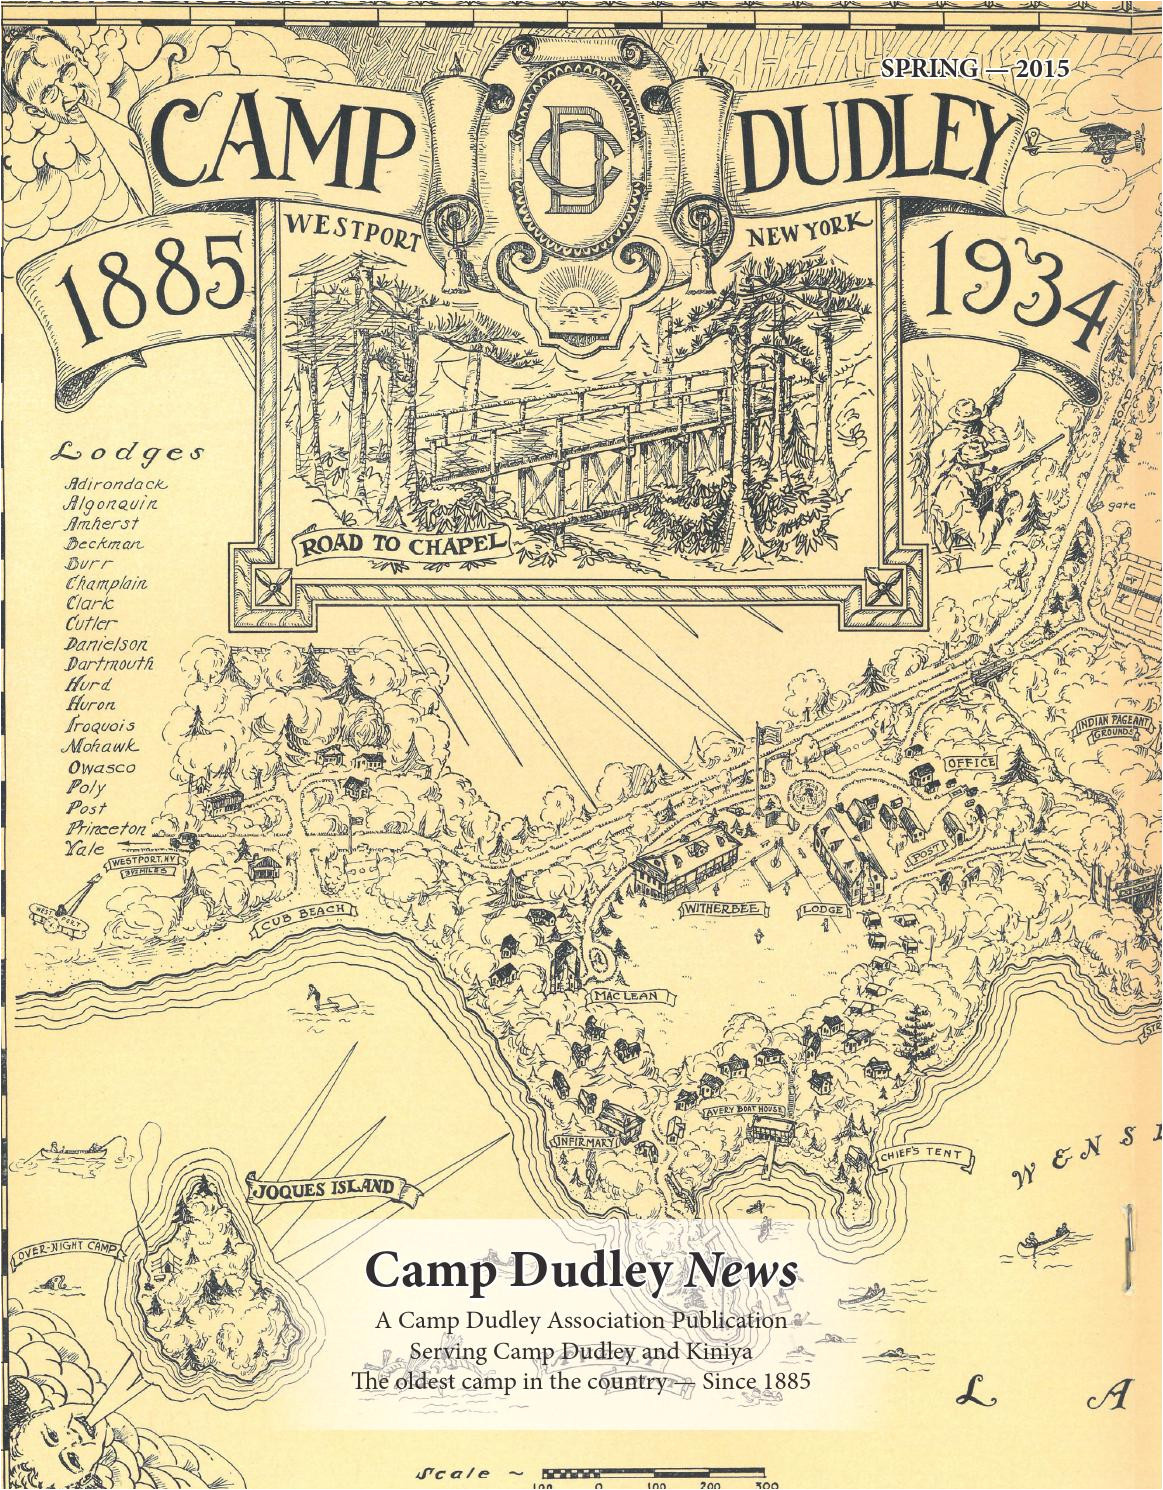 Carson Pirie Scott Gift Card Balance 2015 Spring Camp Dudley News by Camp Dudley issuu